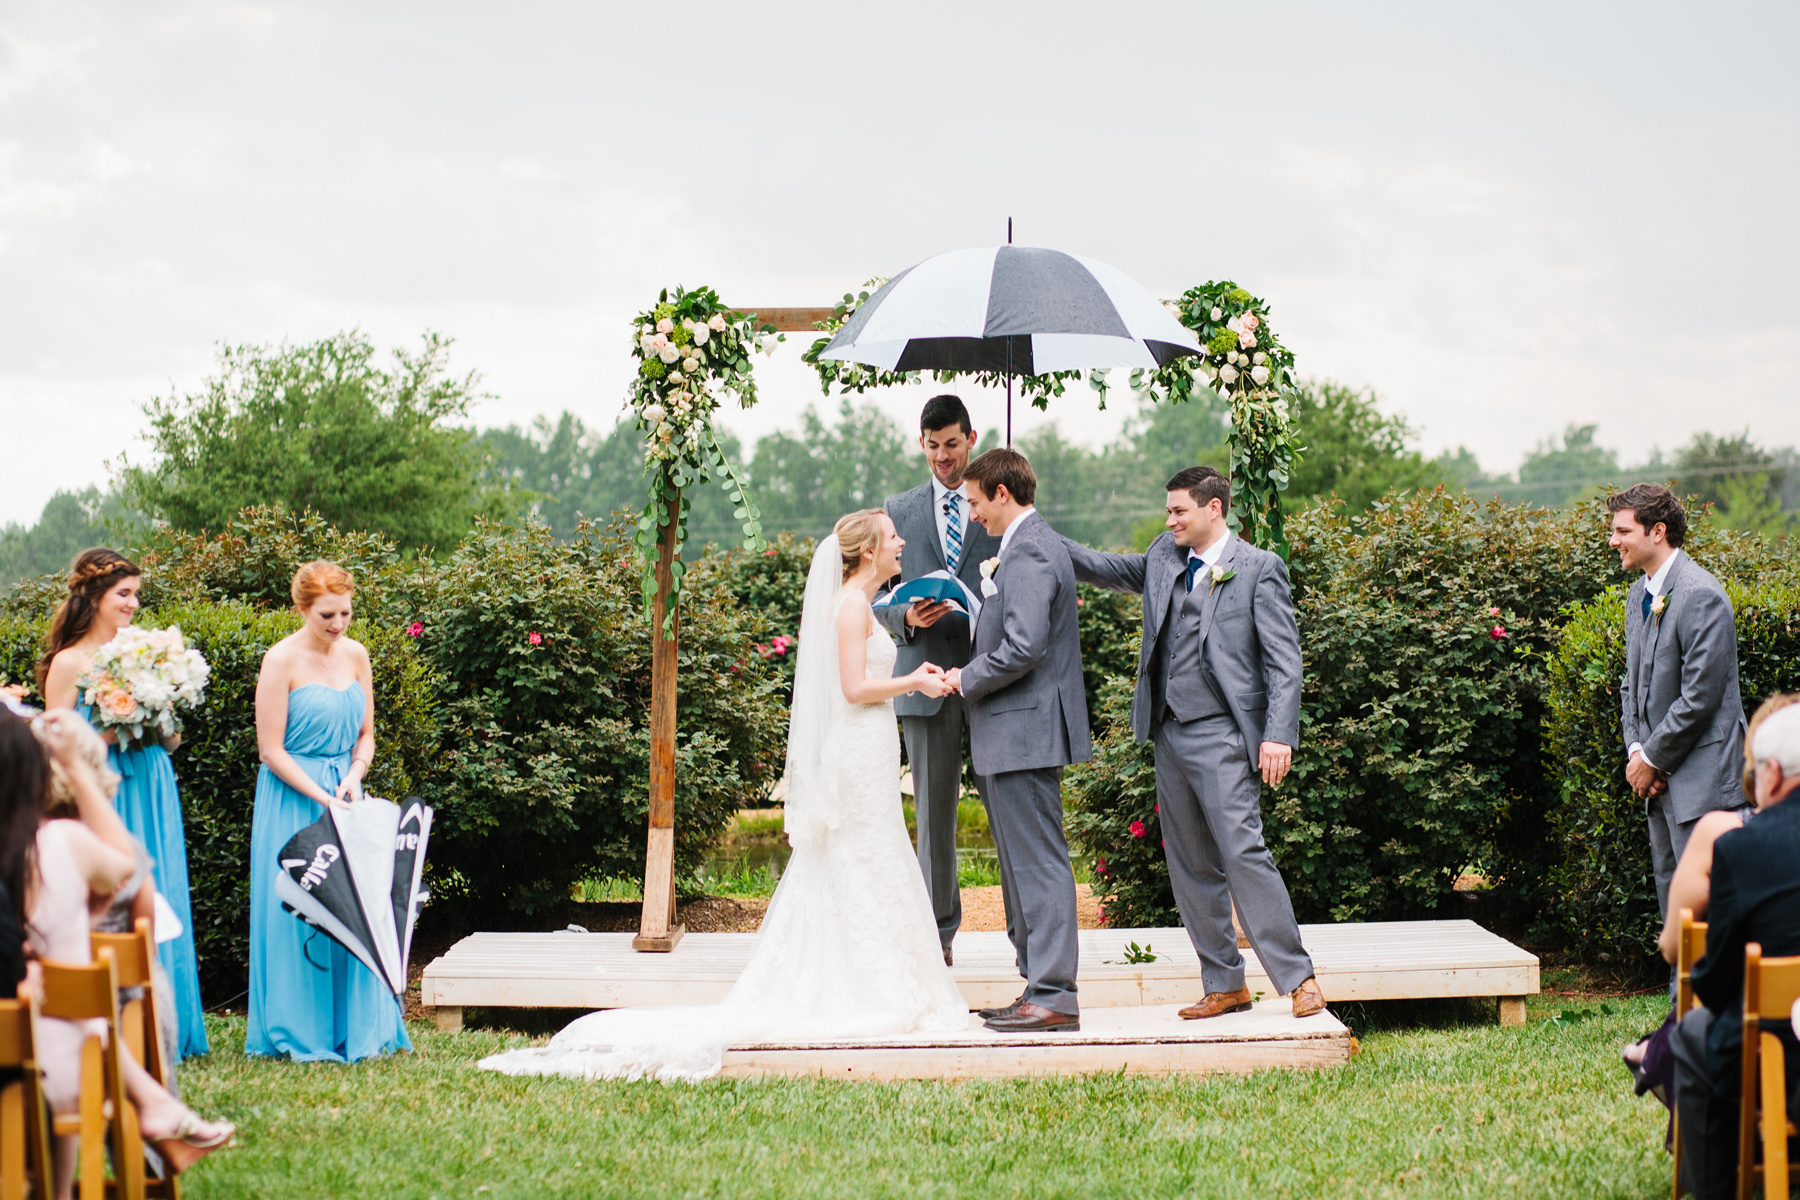 Rainy Wedding Ceremony